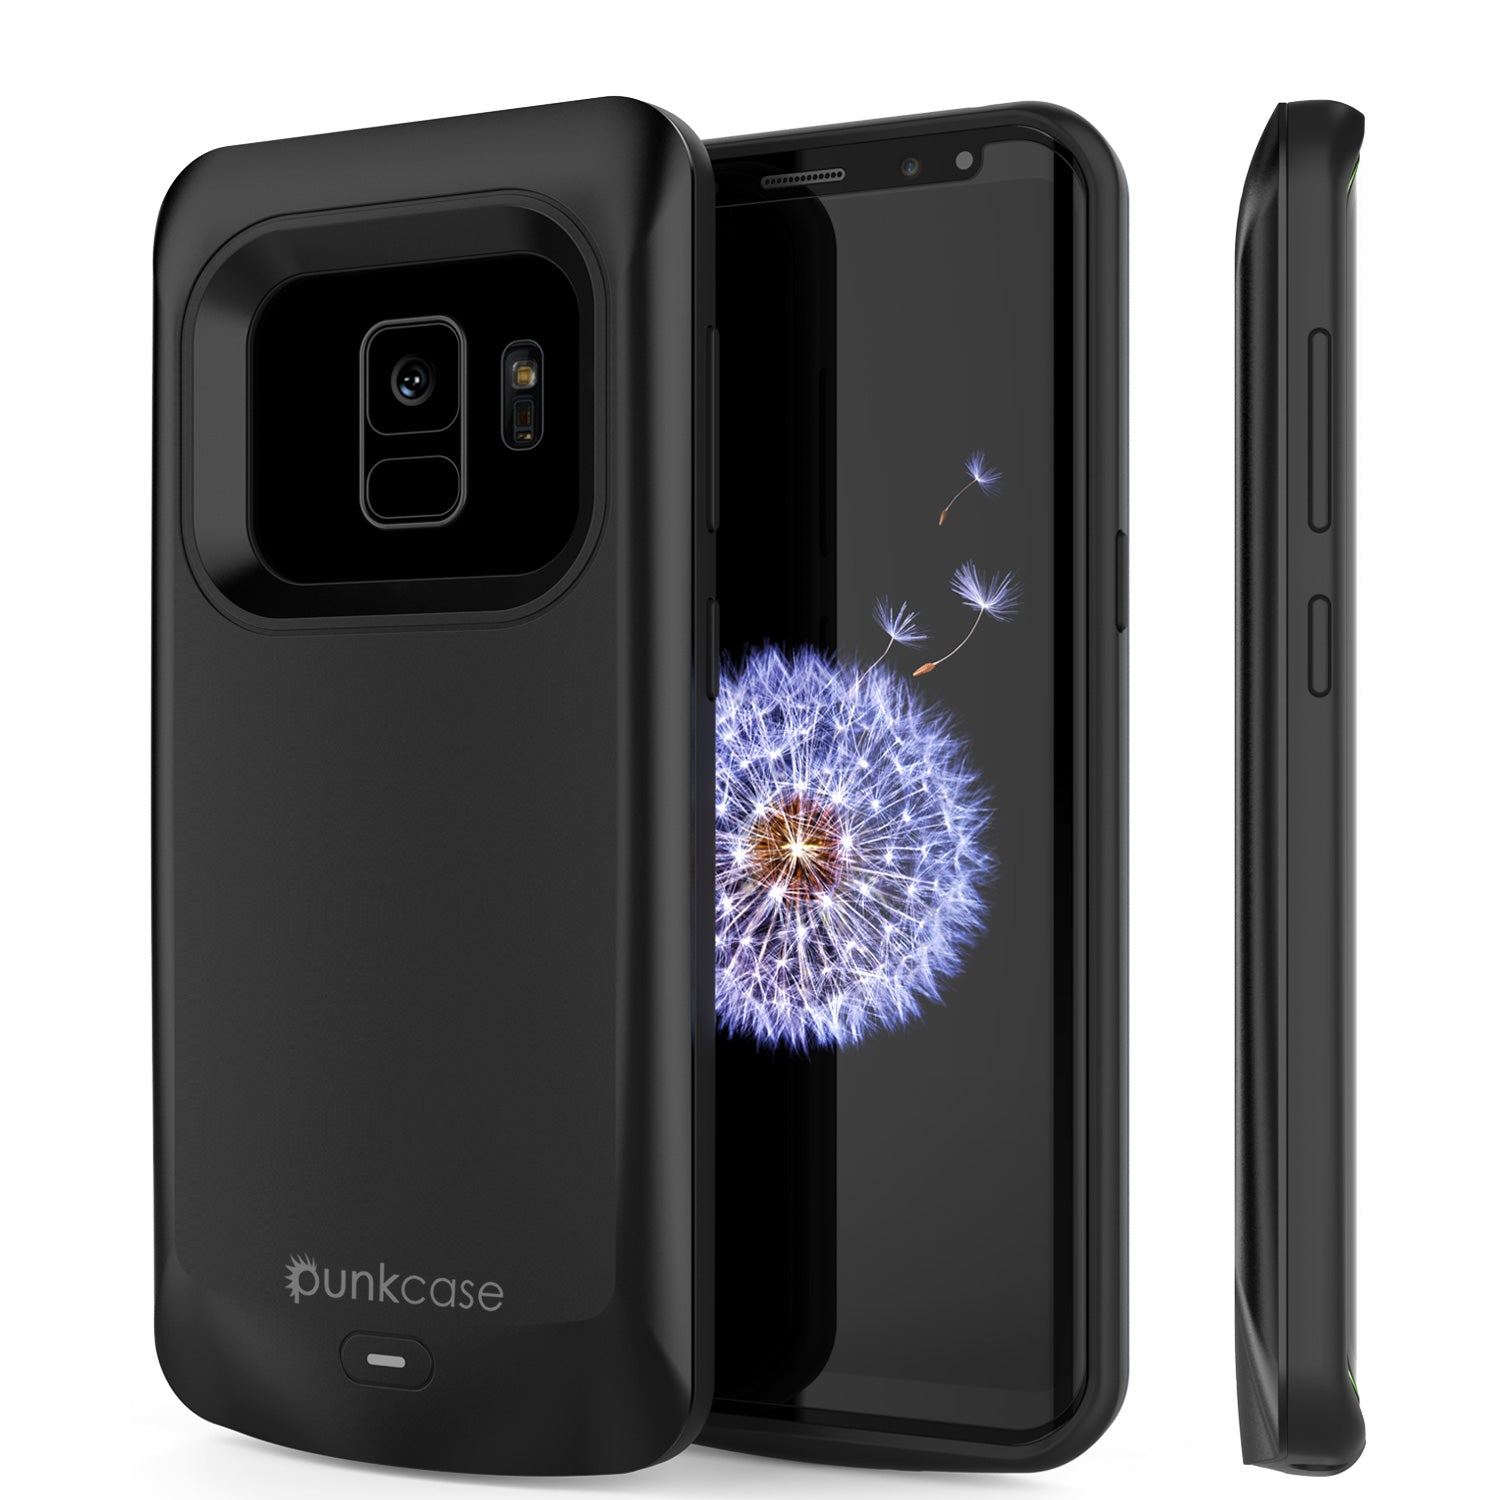 buy popular a1b3f 77a8b Galaxy S9 Battery Case, PunkJuice 5000mAH Fast Charging Power Bank Case  [Black]